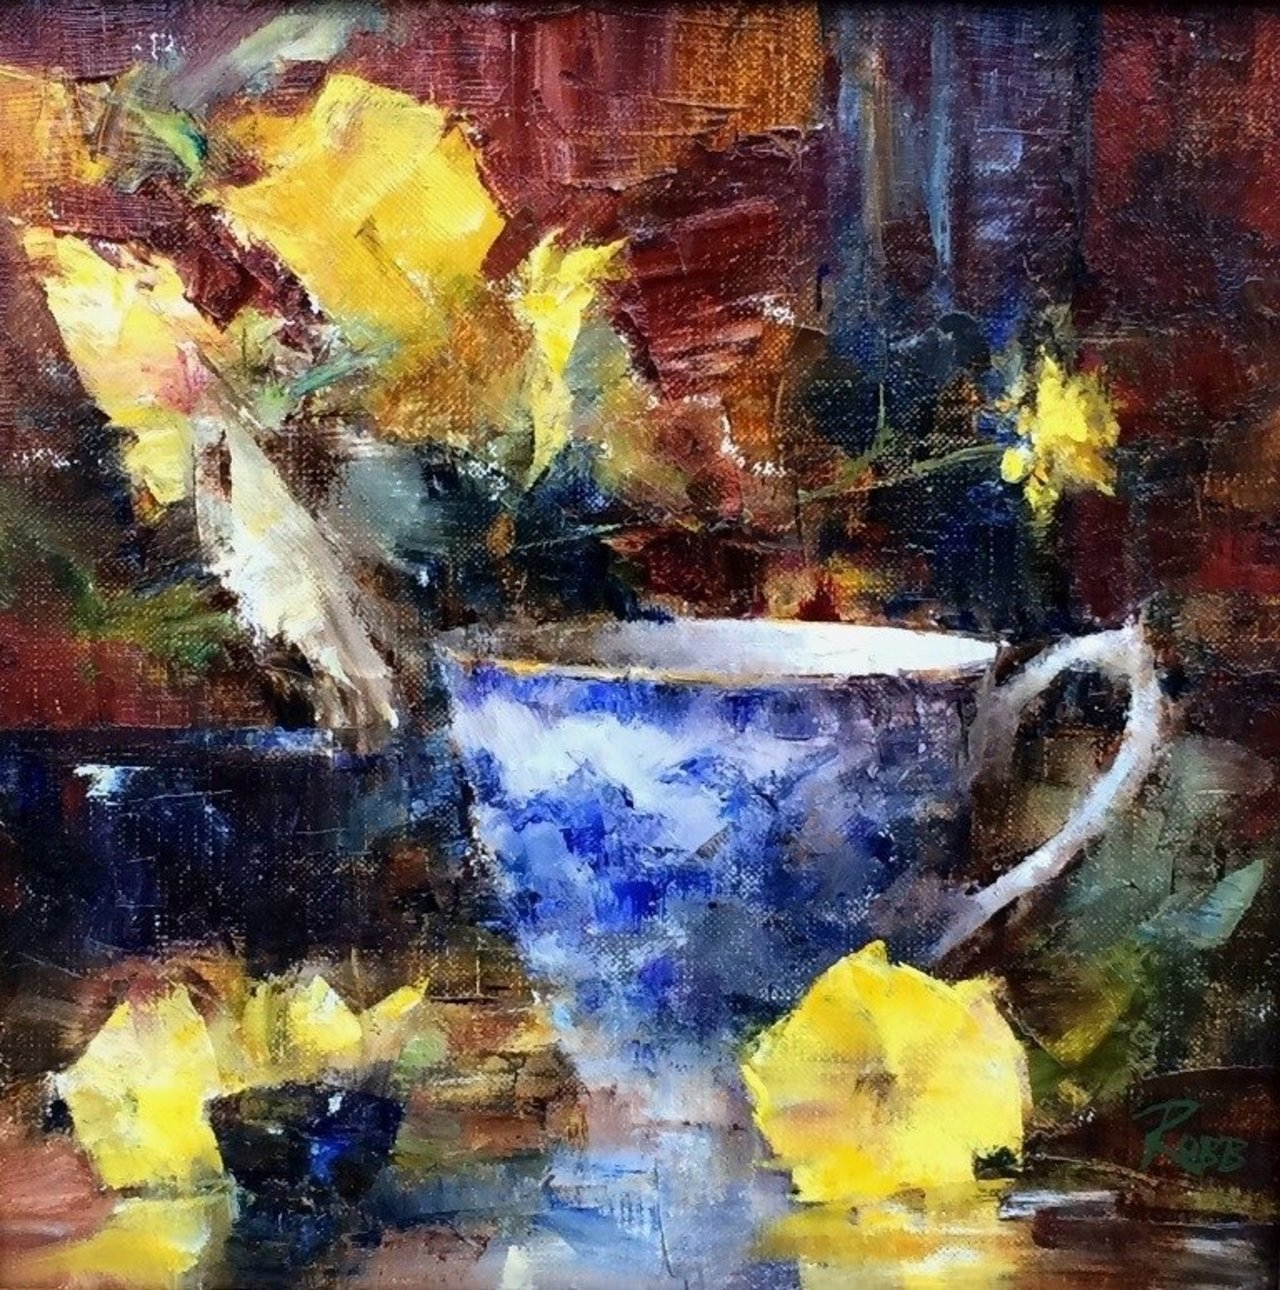 'Yellow Pansies & Tea Cup' by Laura Robb #art https://t.co/lQfcEfnx4r